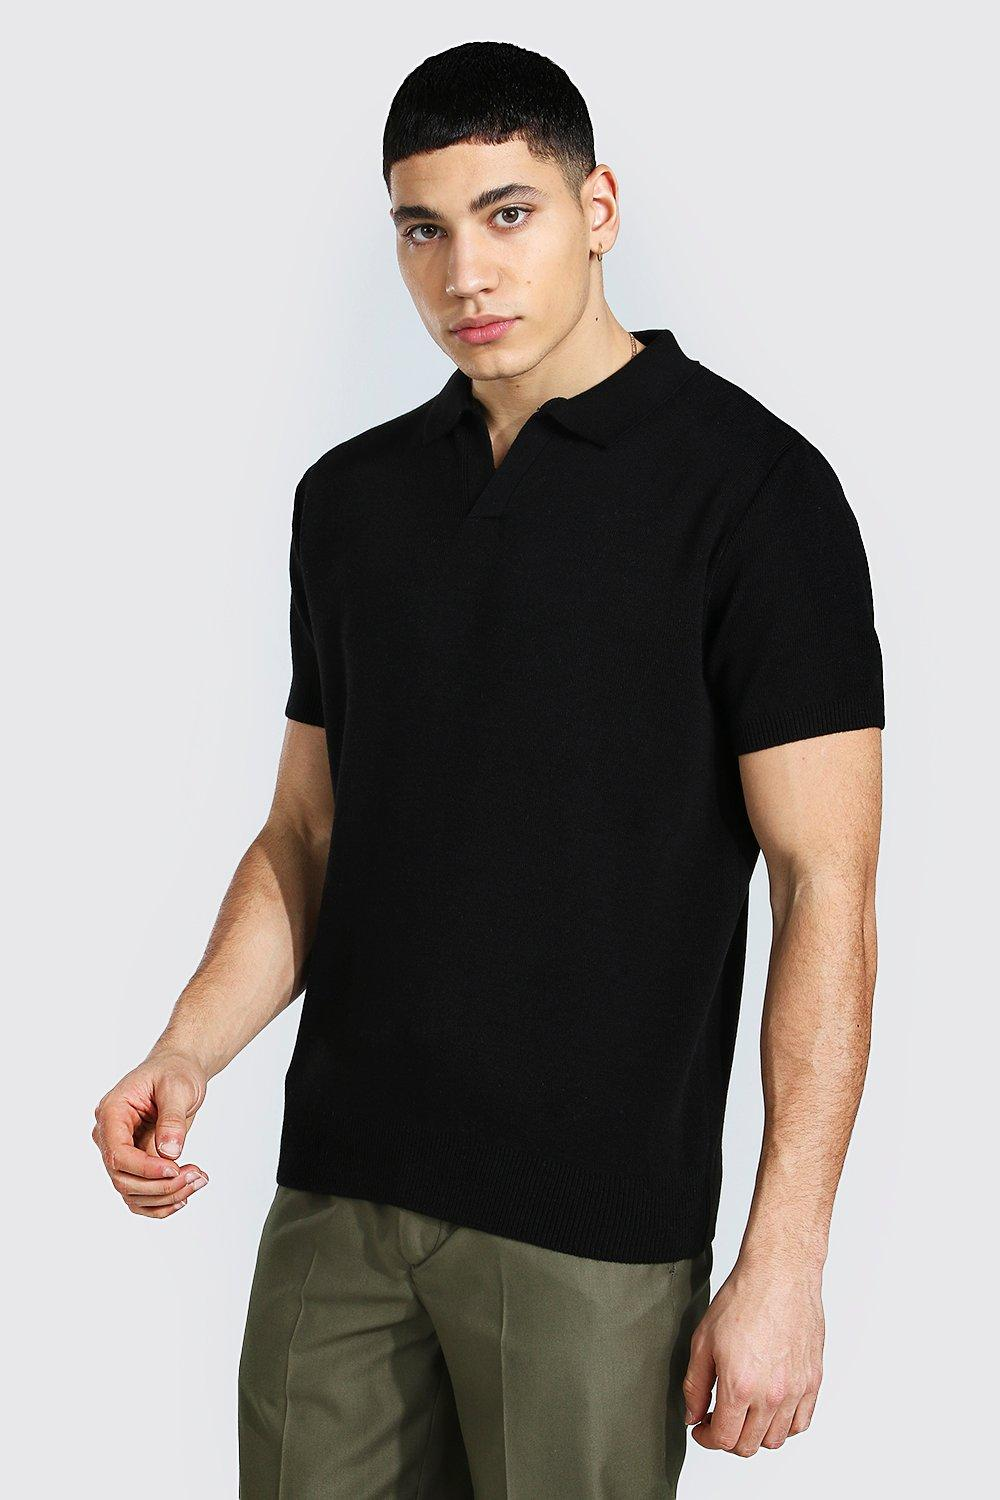 1940s Men's Shirts, Sweaters, Vests Mens Short Sleeve Revere Collar Knitted Polo - Black $10.80 AT vintagedancer.com